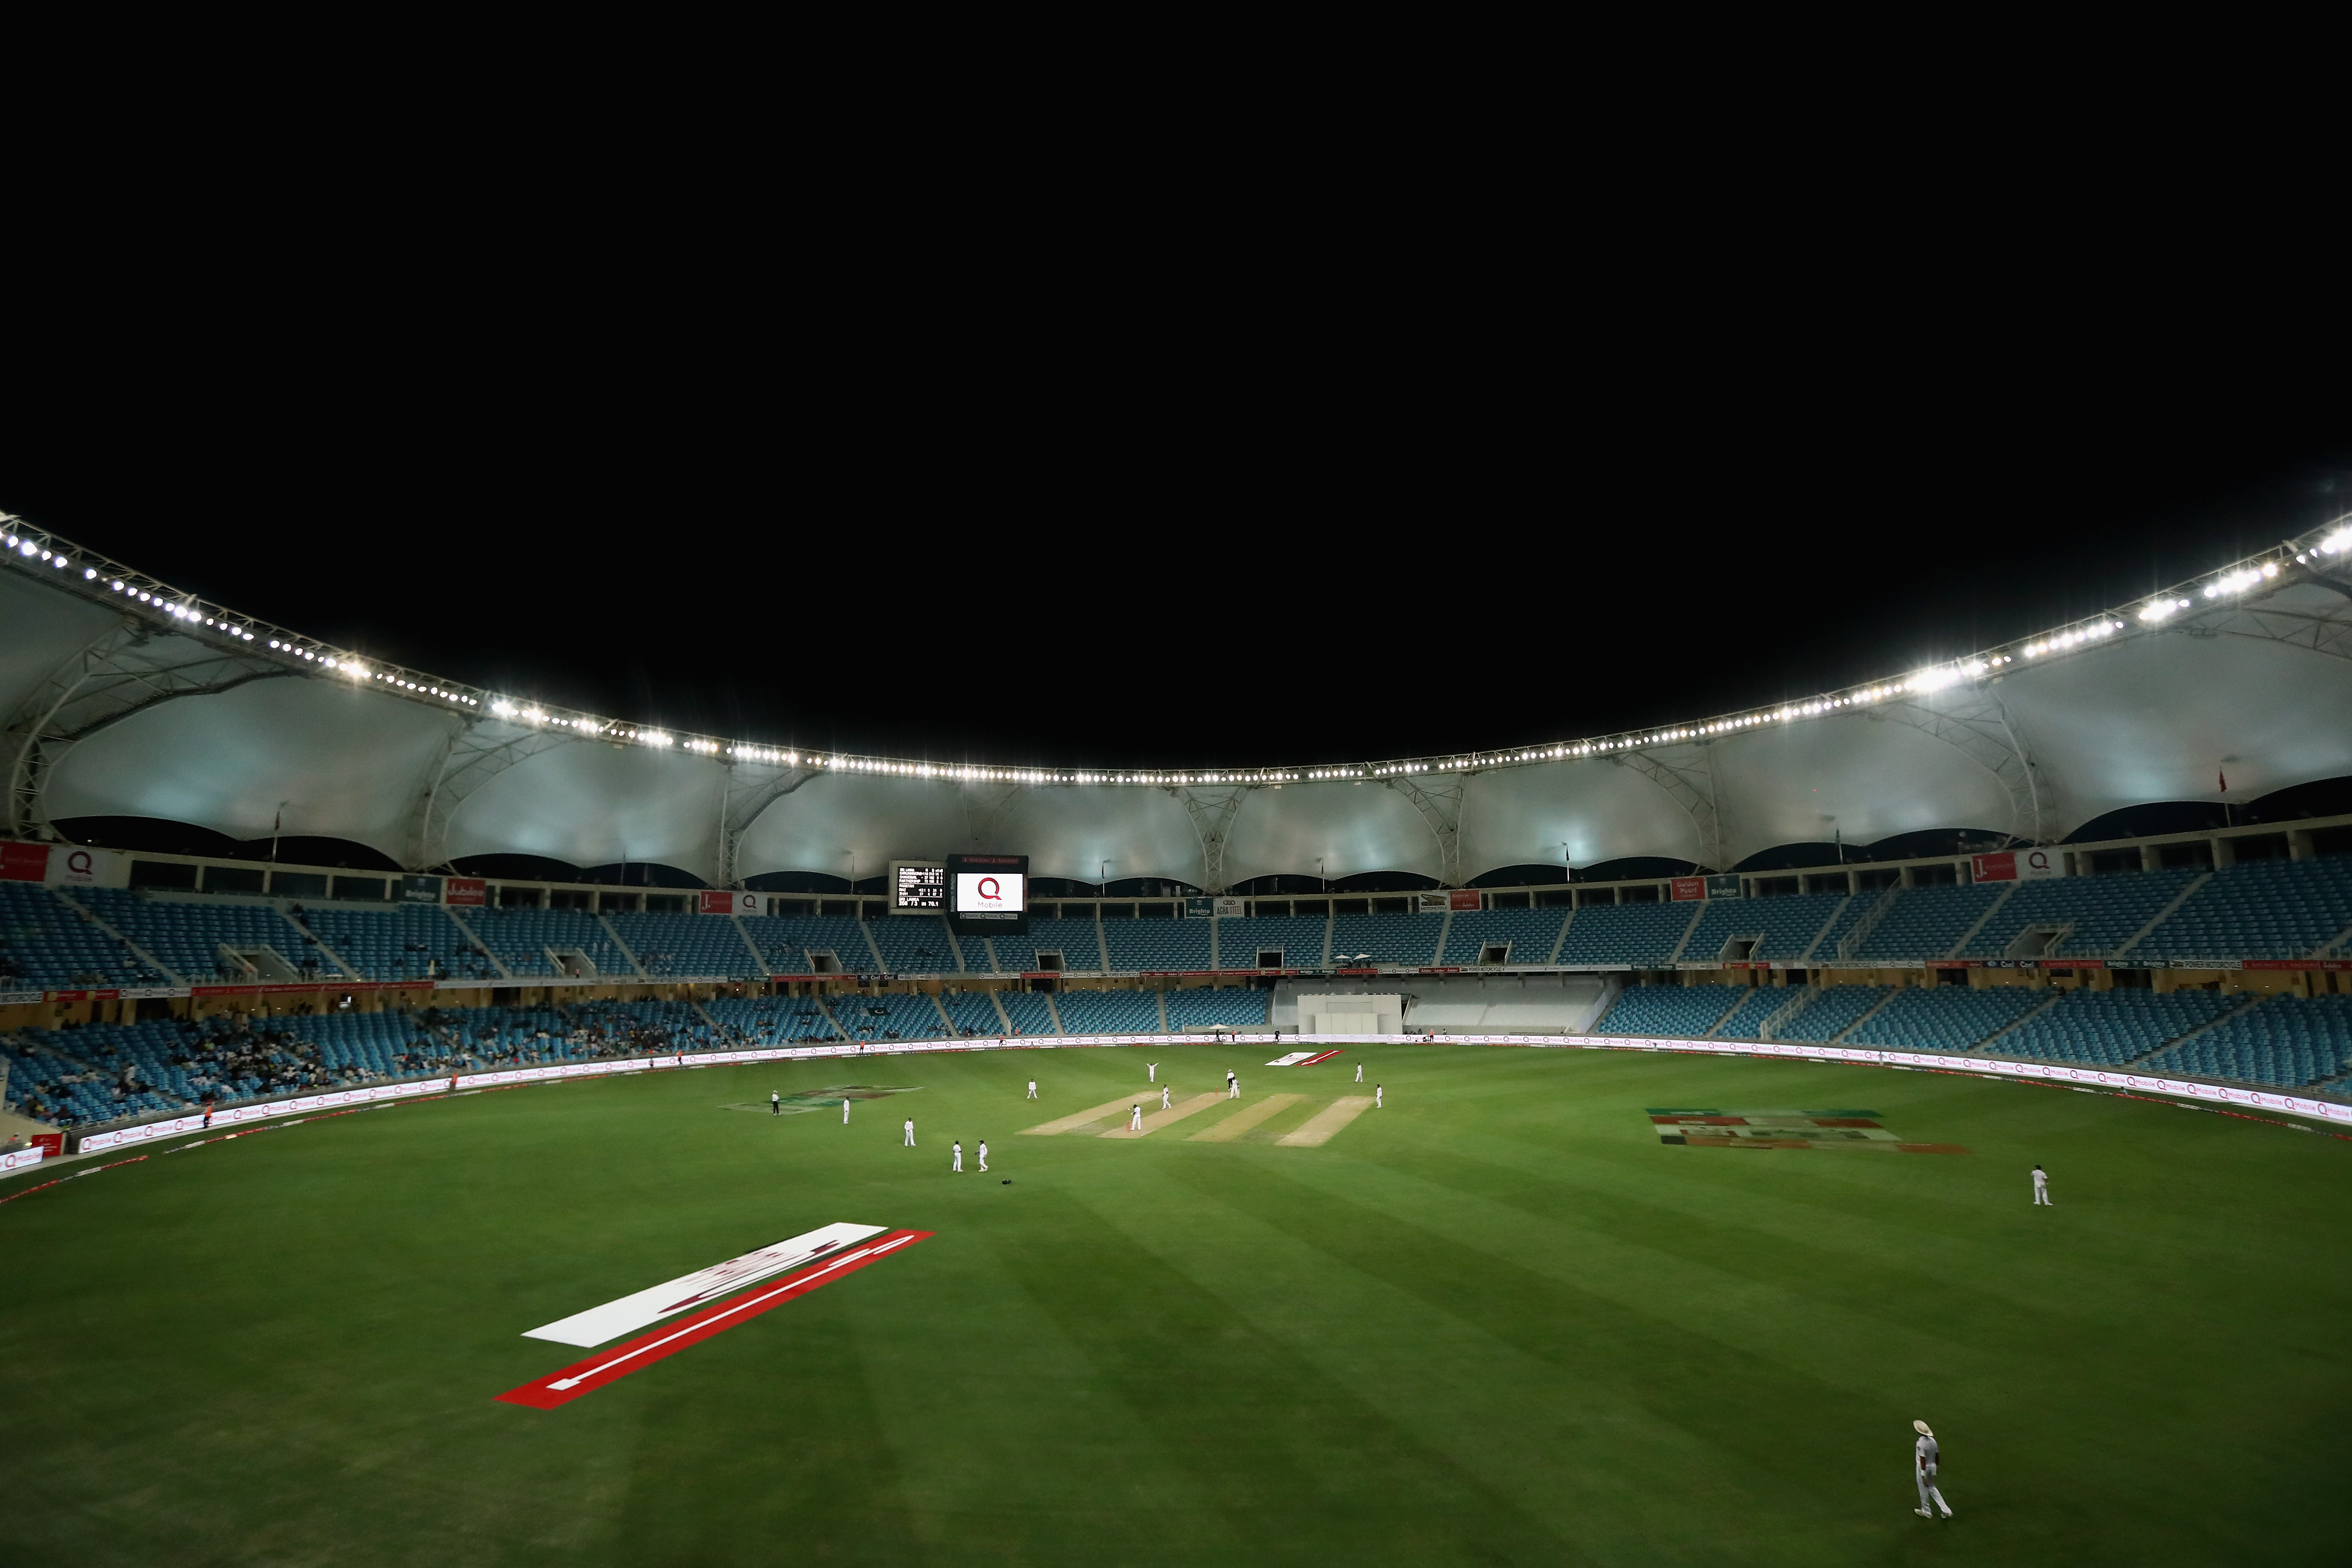 A general view of day-night Test in Dubai | Getty